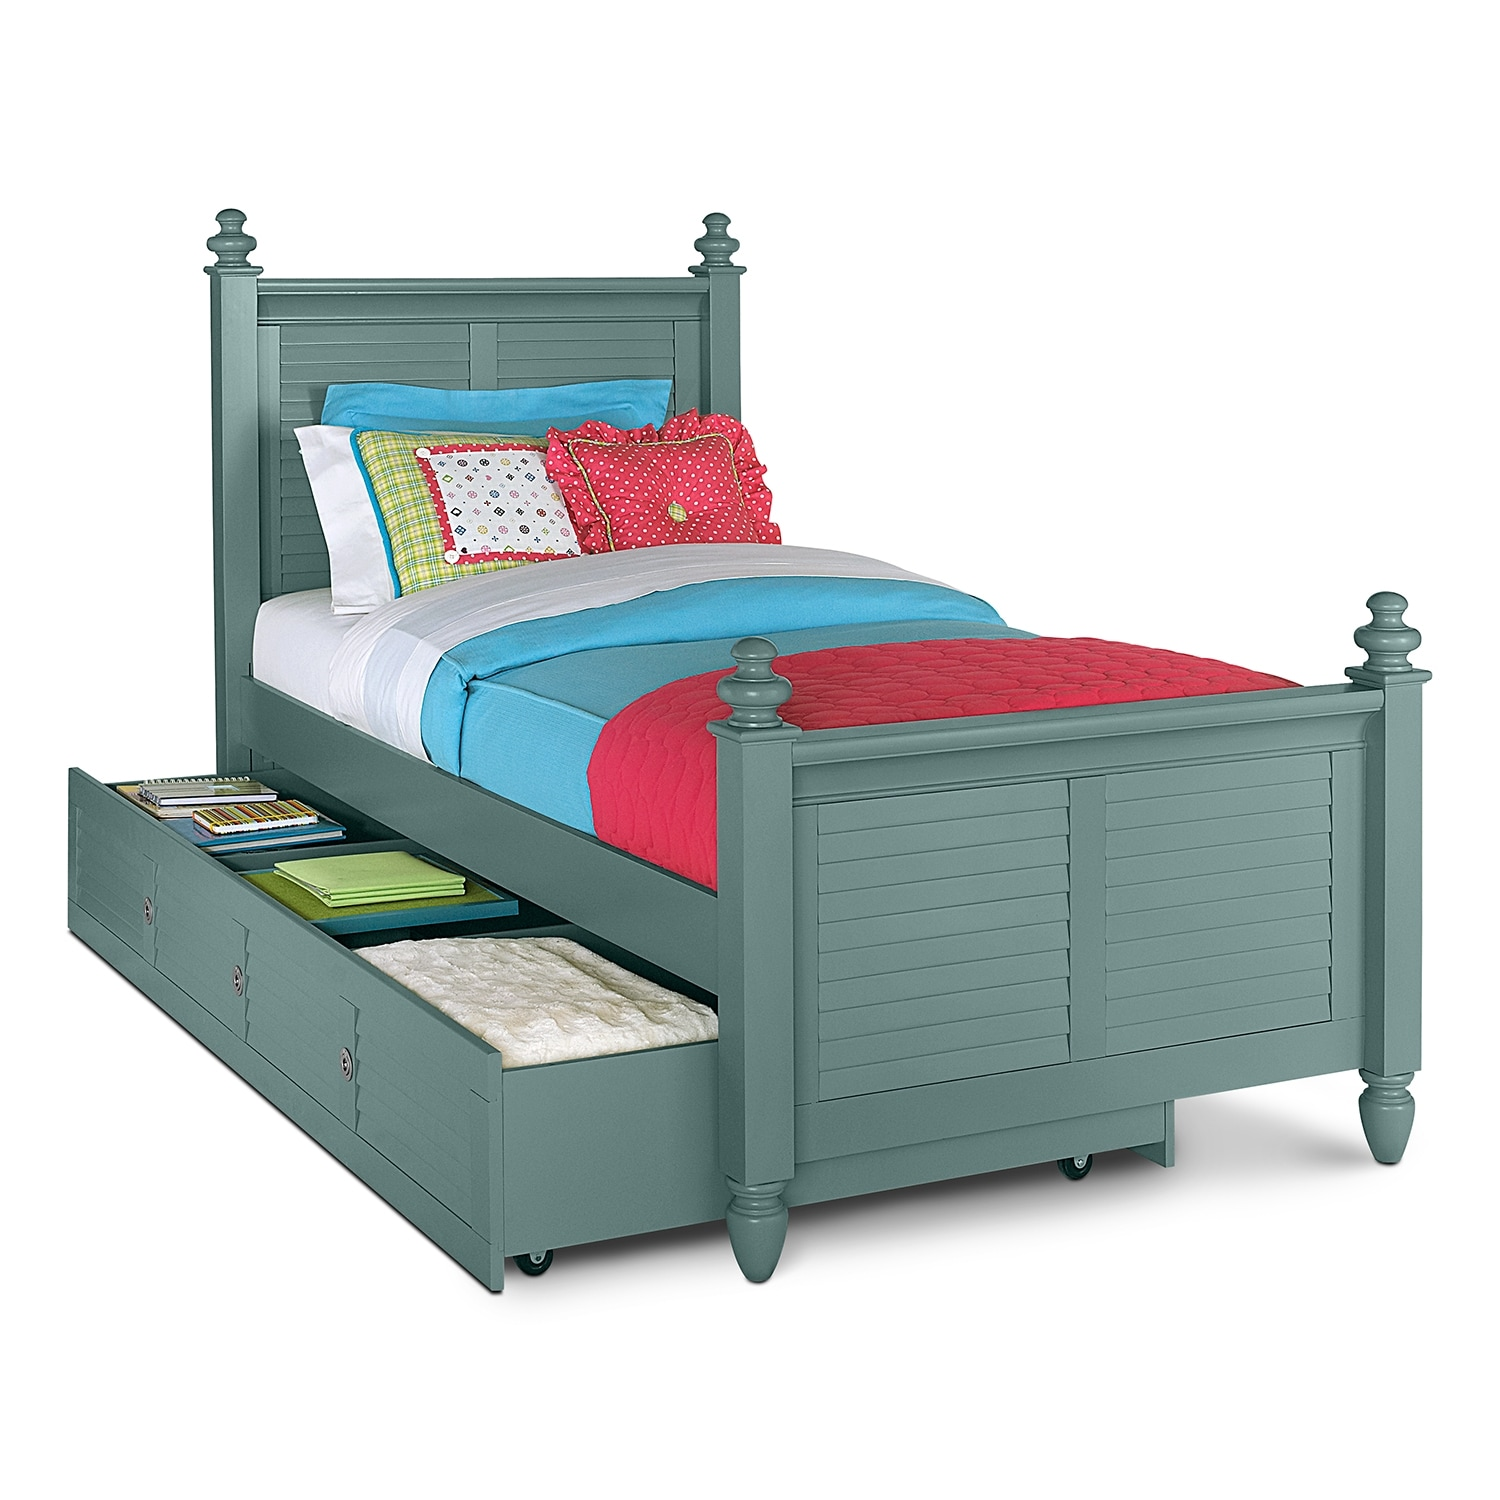 Seaside Full Bed with Trundle - Blue | Value City Furniture